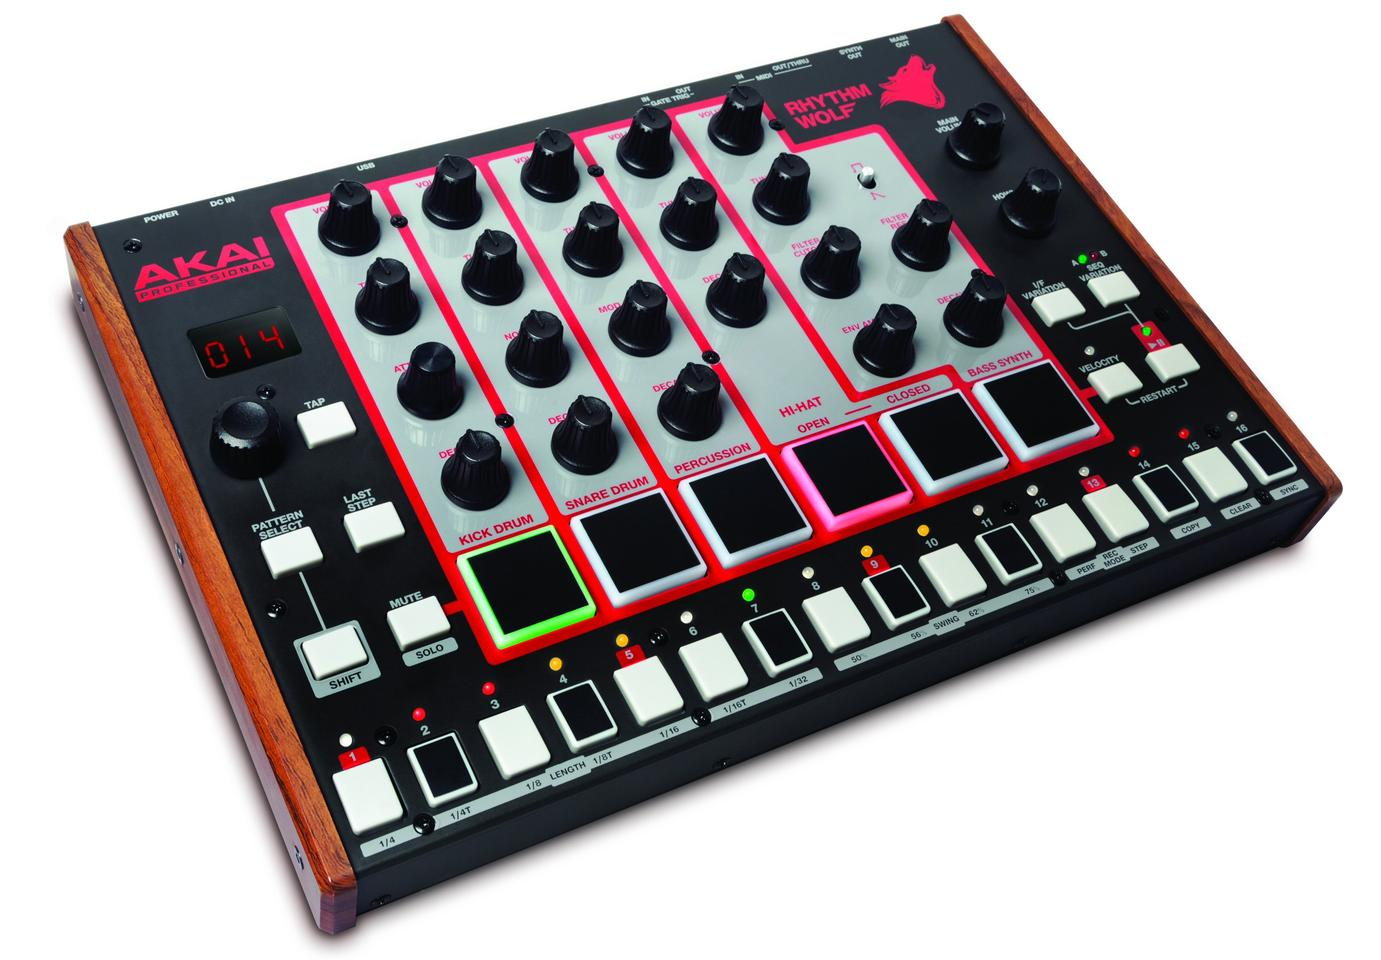 The Rhythm Wolf analog drum machine and bass synth from Akai